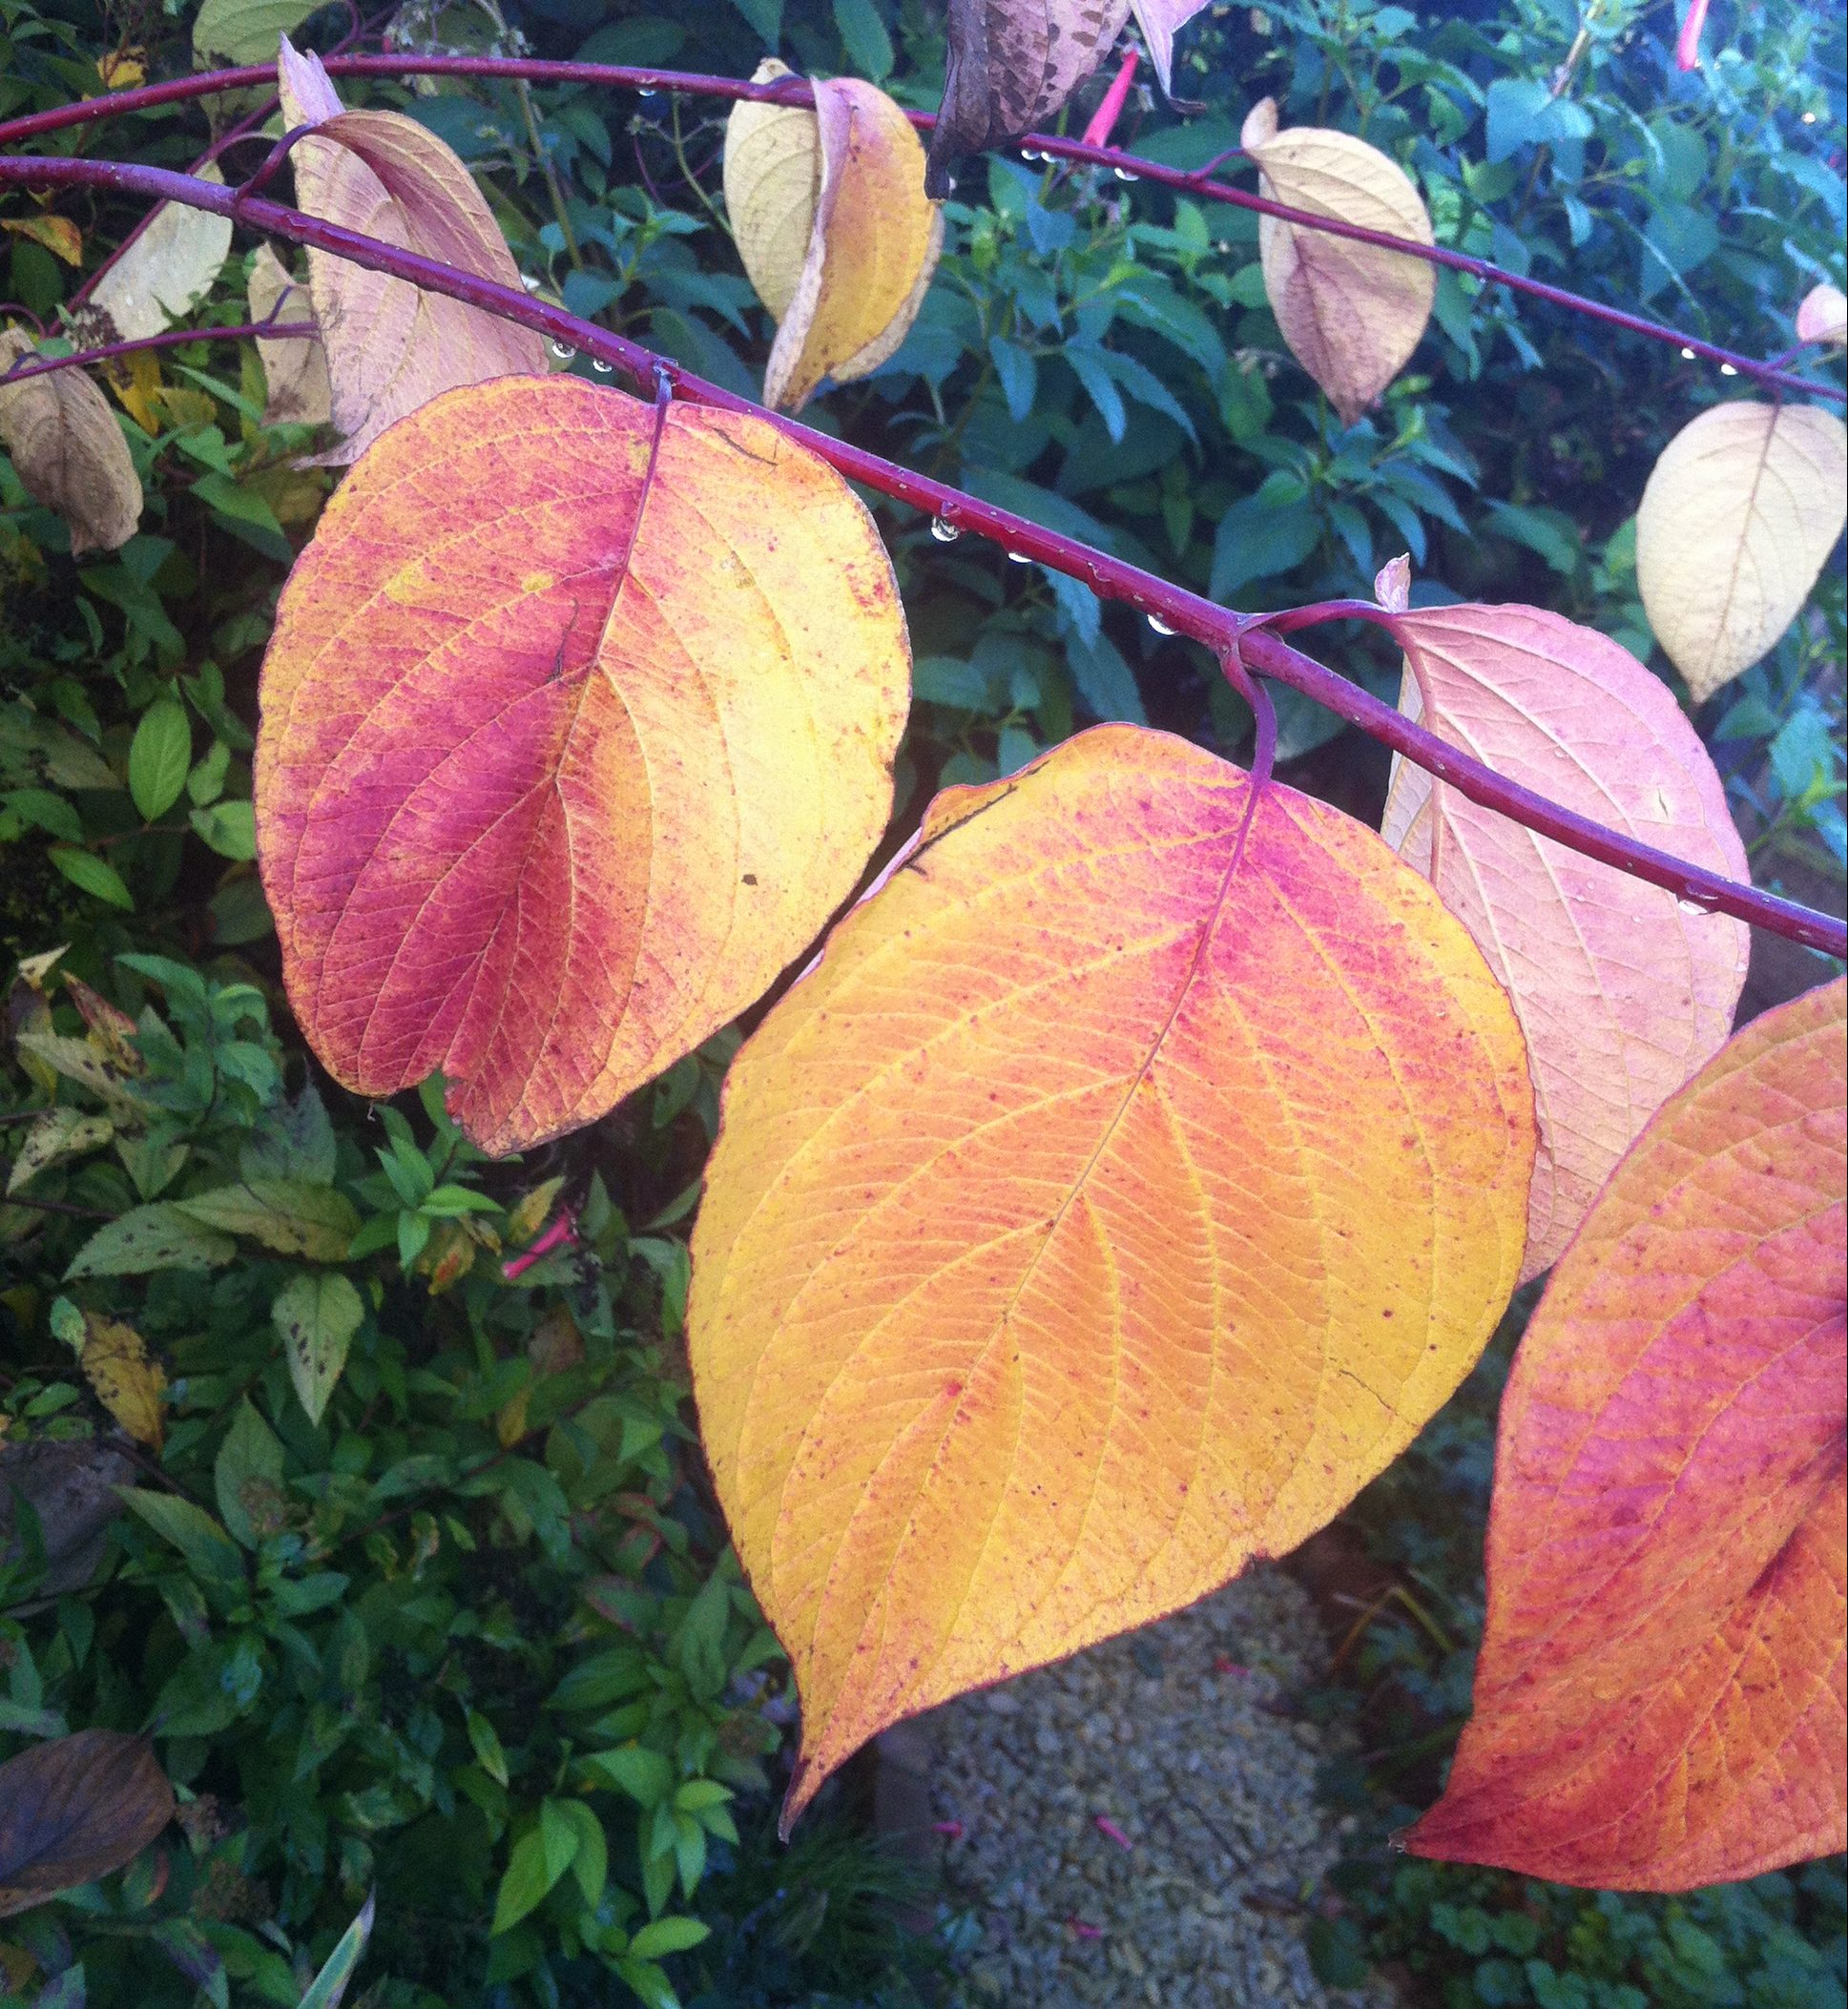 Pruning cornus gives great autumn leaves too